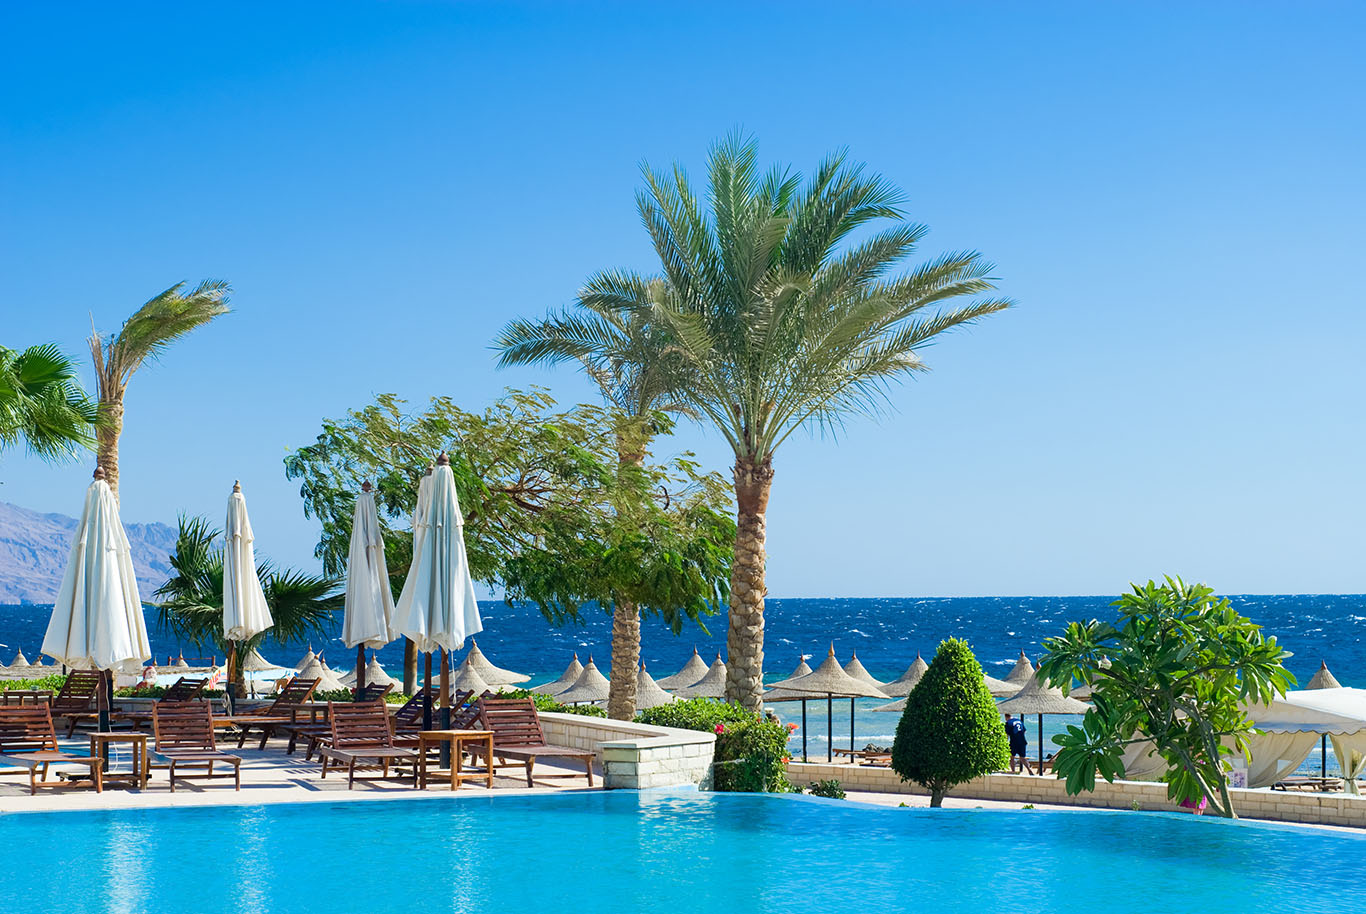 Aegypten-Sharm-el-Sheikh-Hotels-and-reosrt